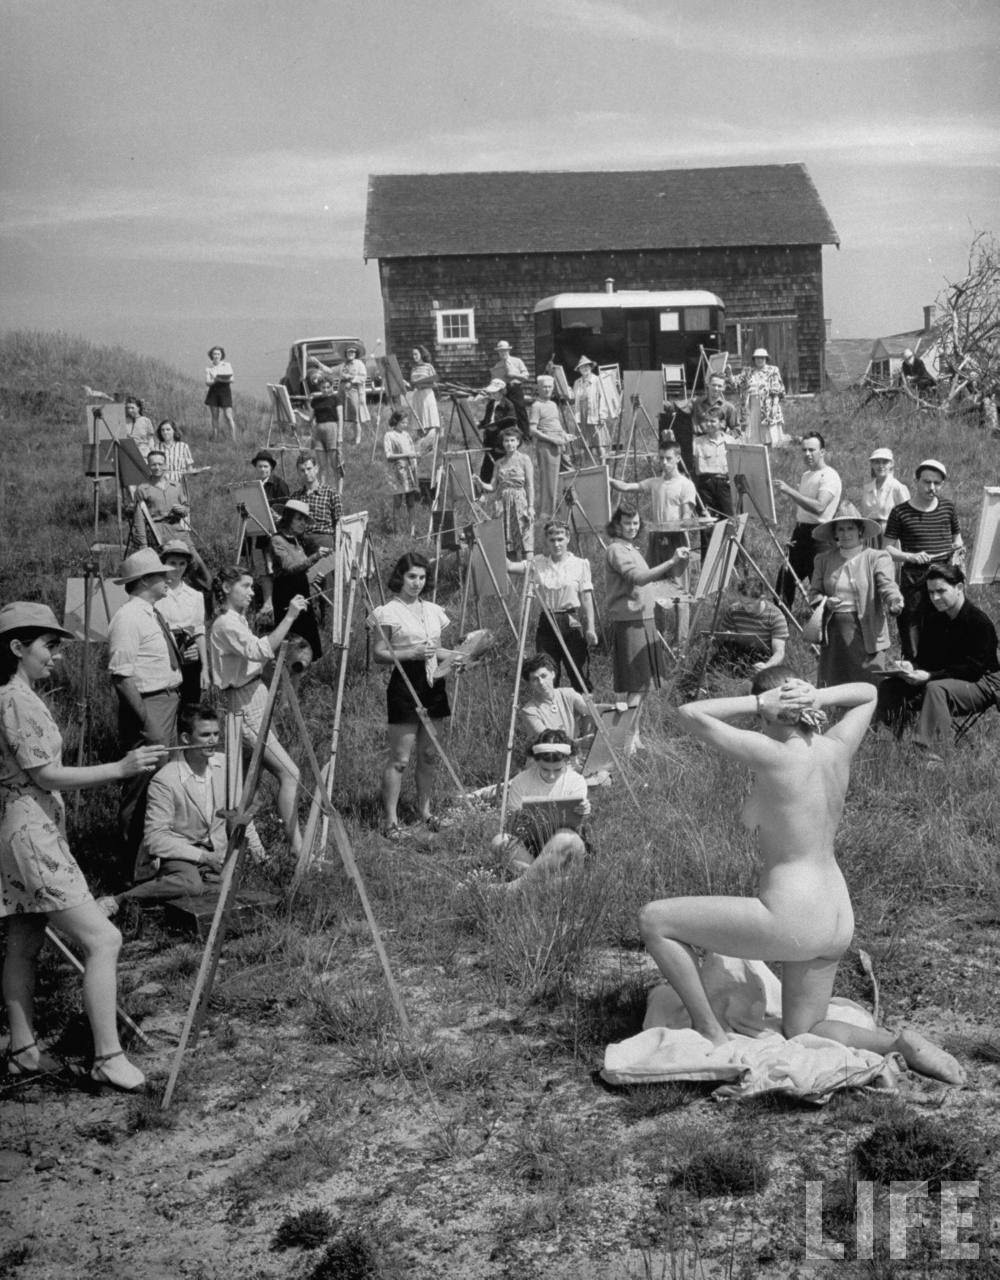 Andreas Feininger: Nude model posing for a large group of art students of the Farnsworth Art School working at easels outdoors on a gentle hillside. Cape Cod, MA, US. July 1946